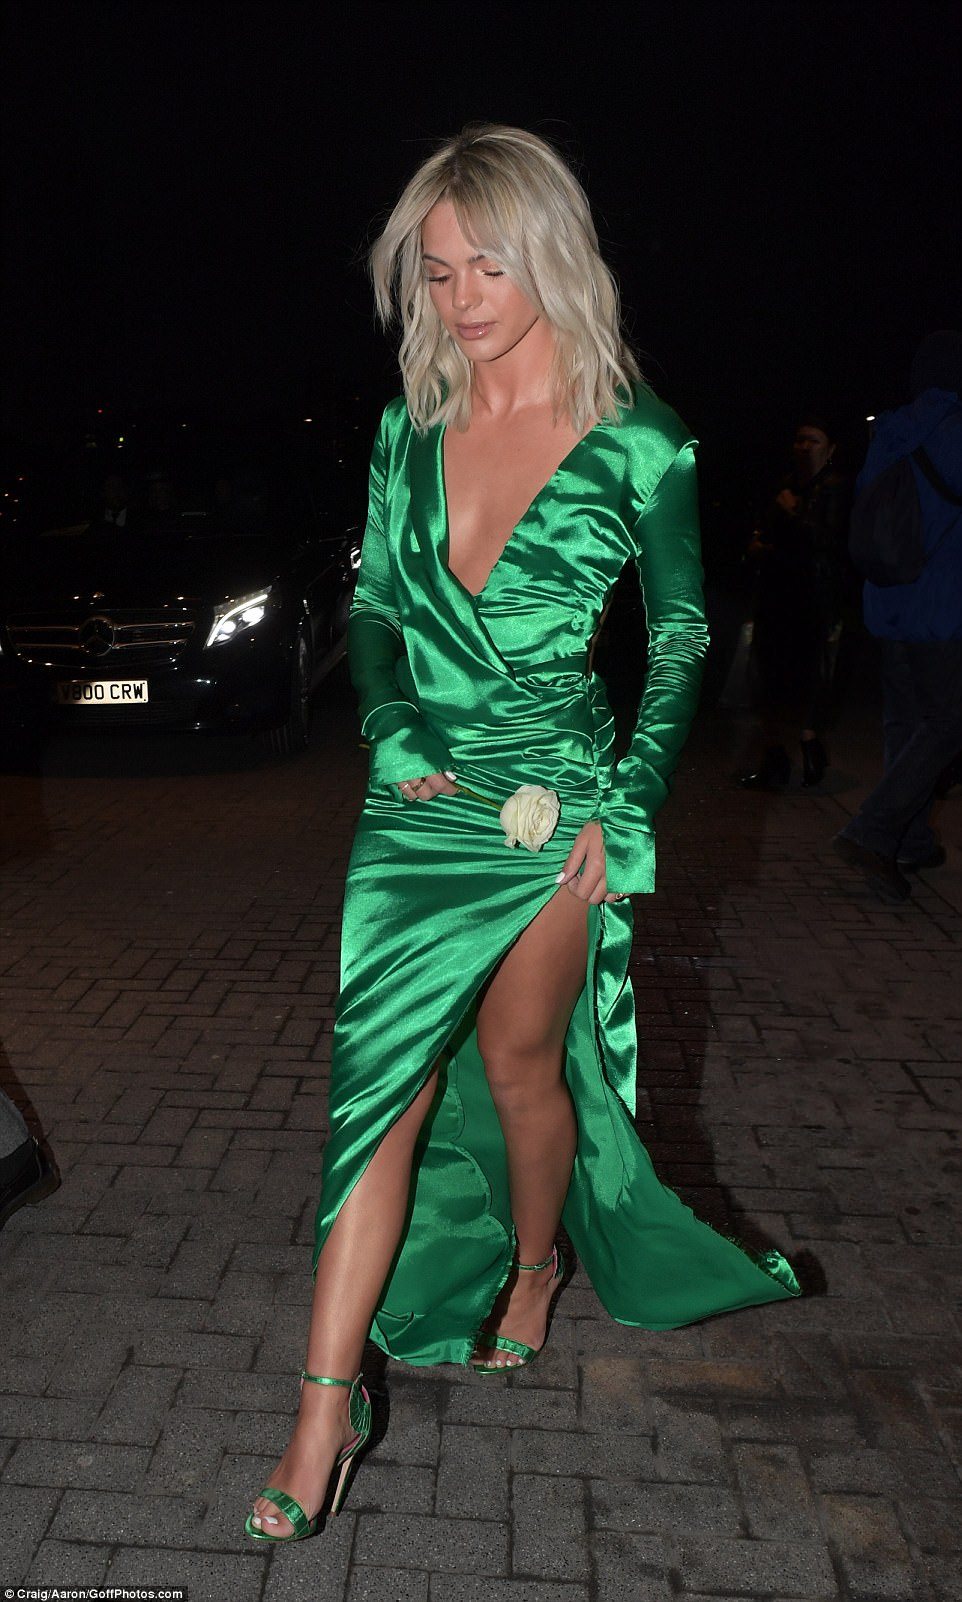 Bright: The plunging neckline offered a daring edge to the look and she added a matching pair of strappy heels to the emerald ensemble